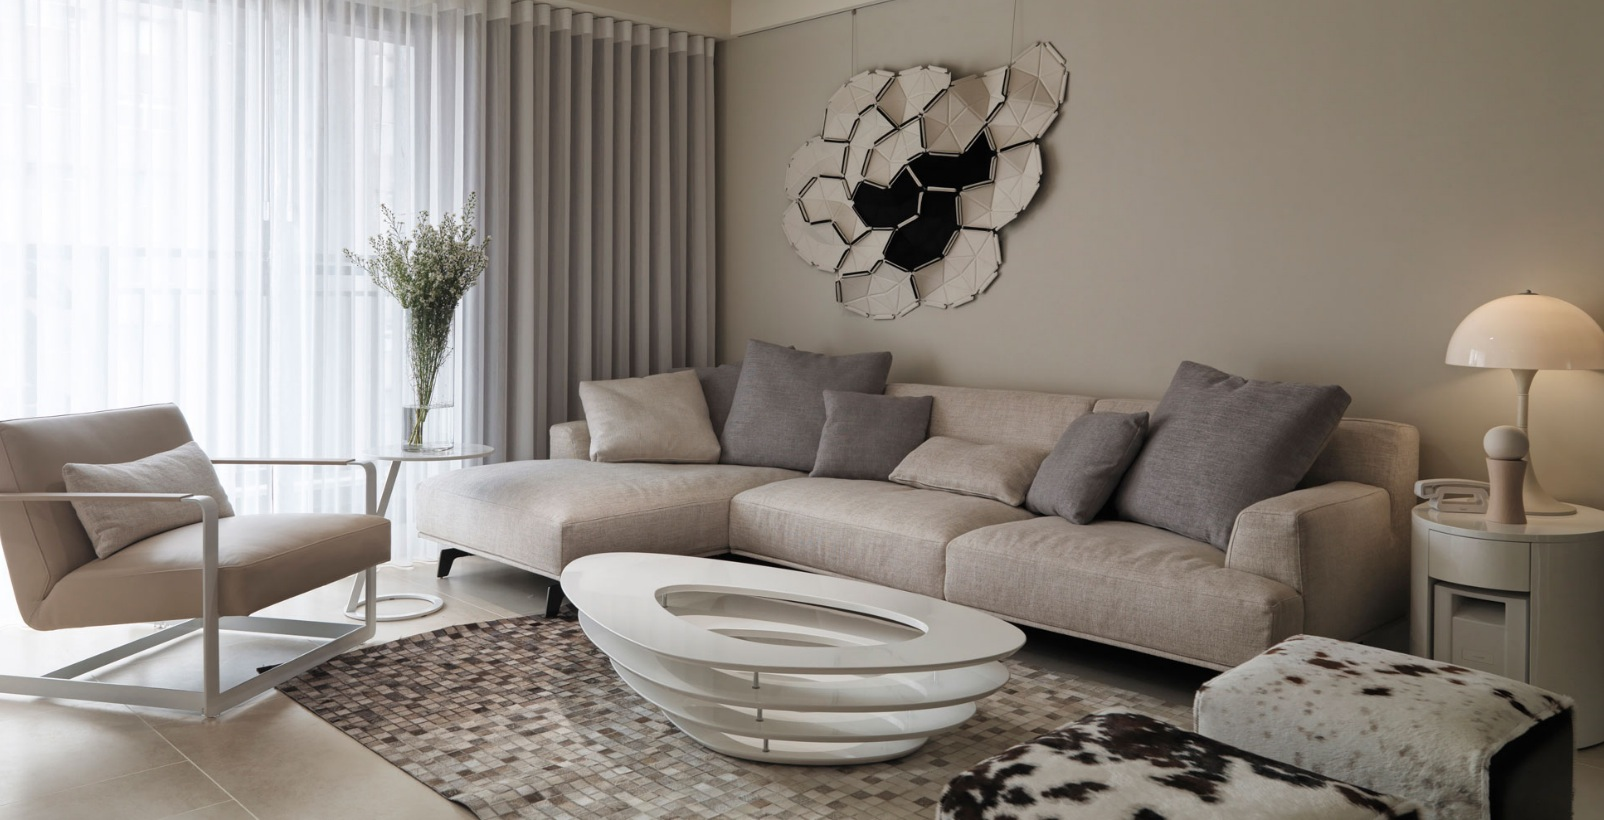 Neutral contemporary living room interior design ideas for Neutral living room design